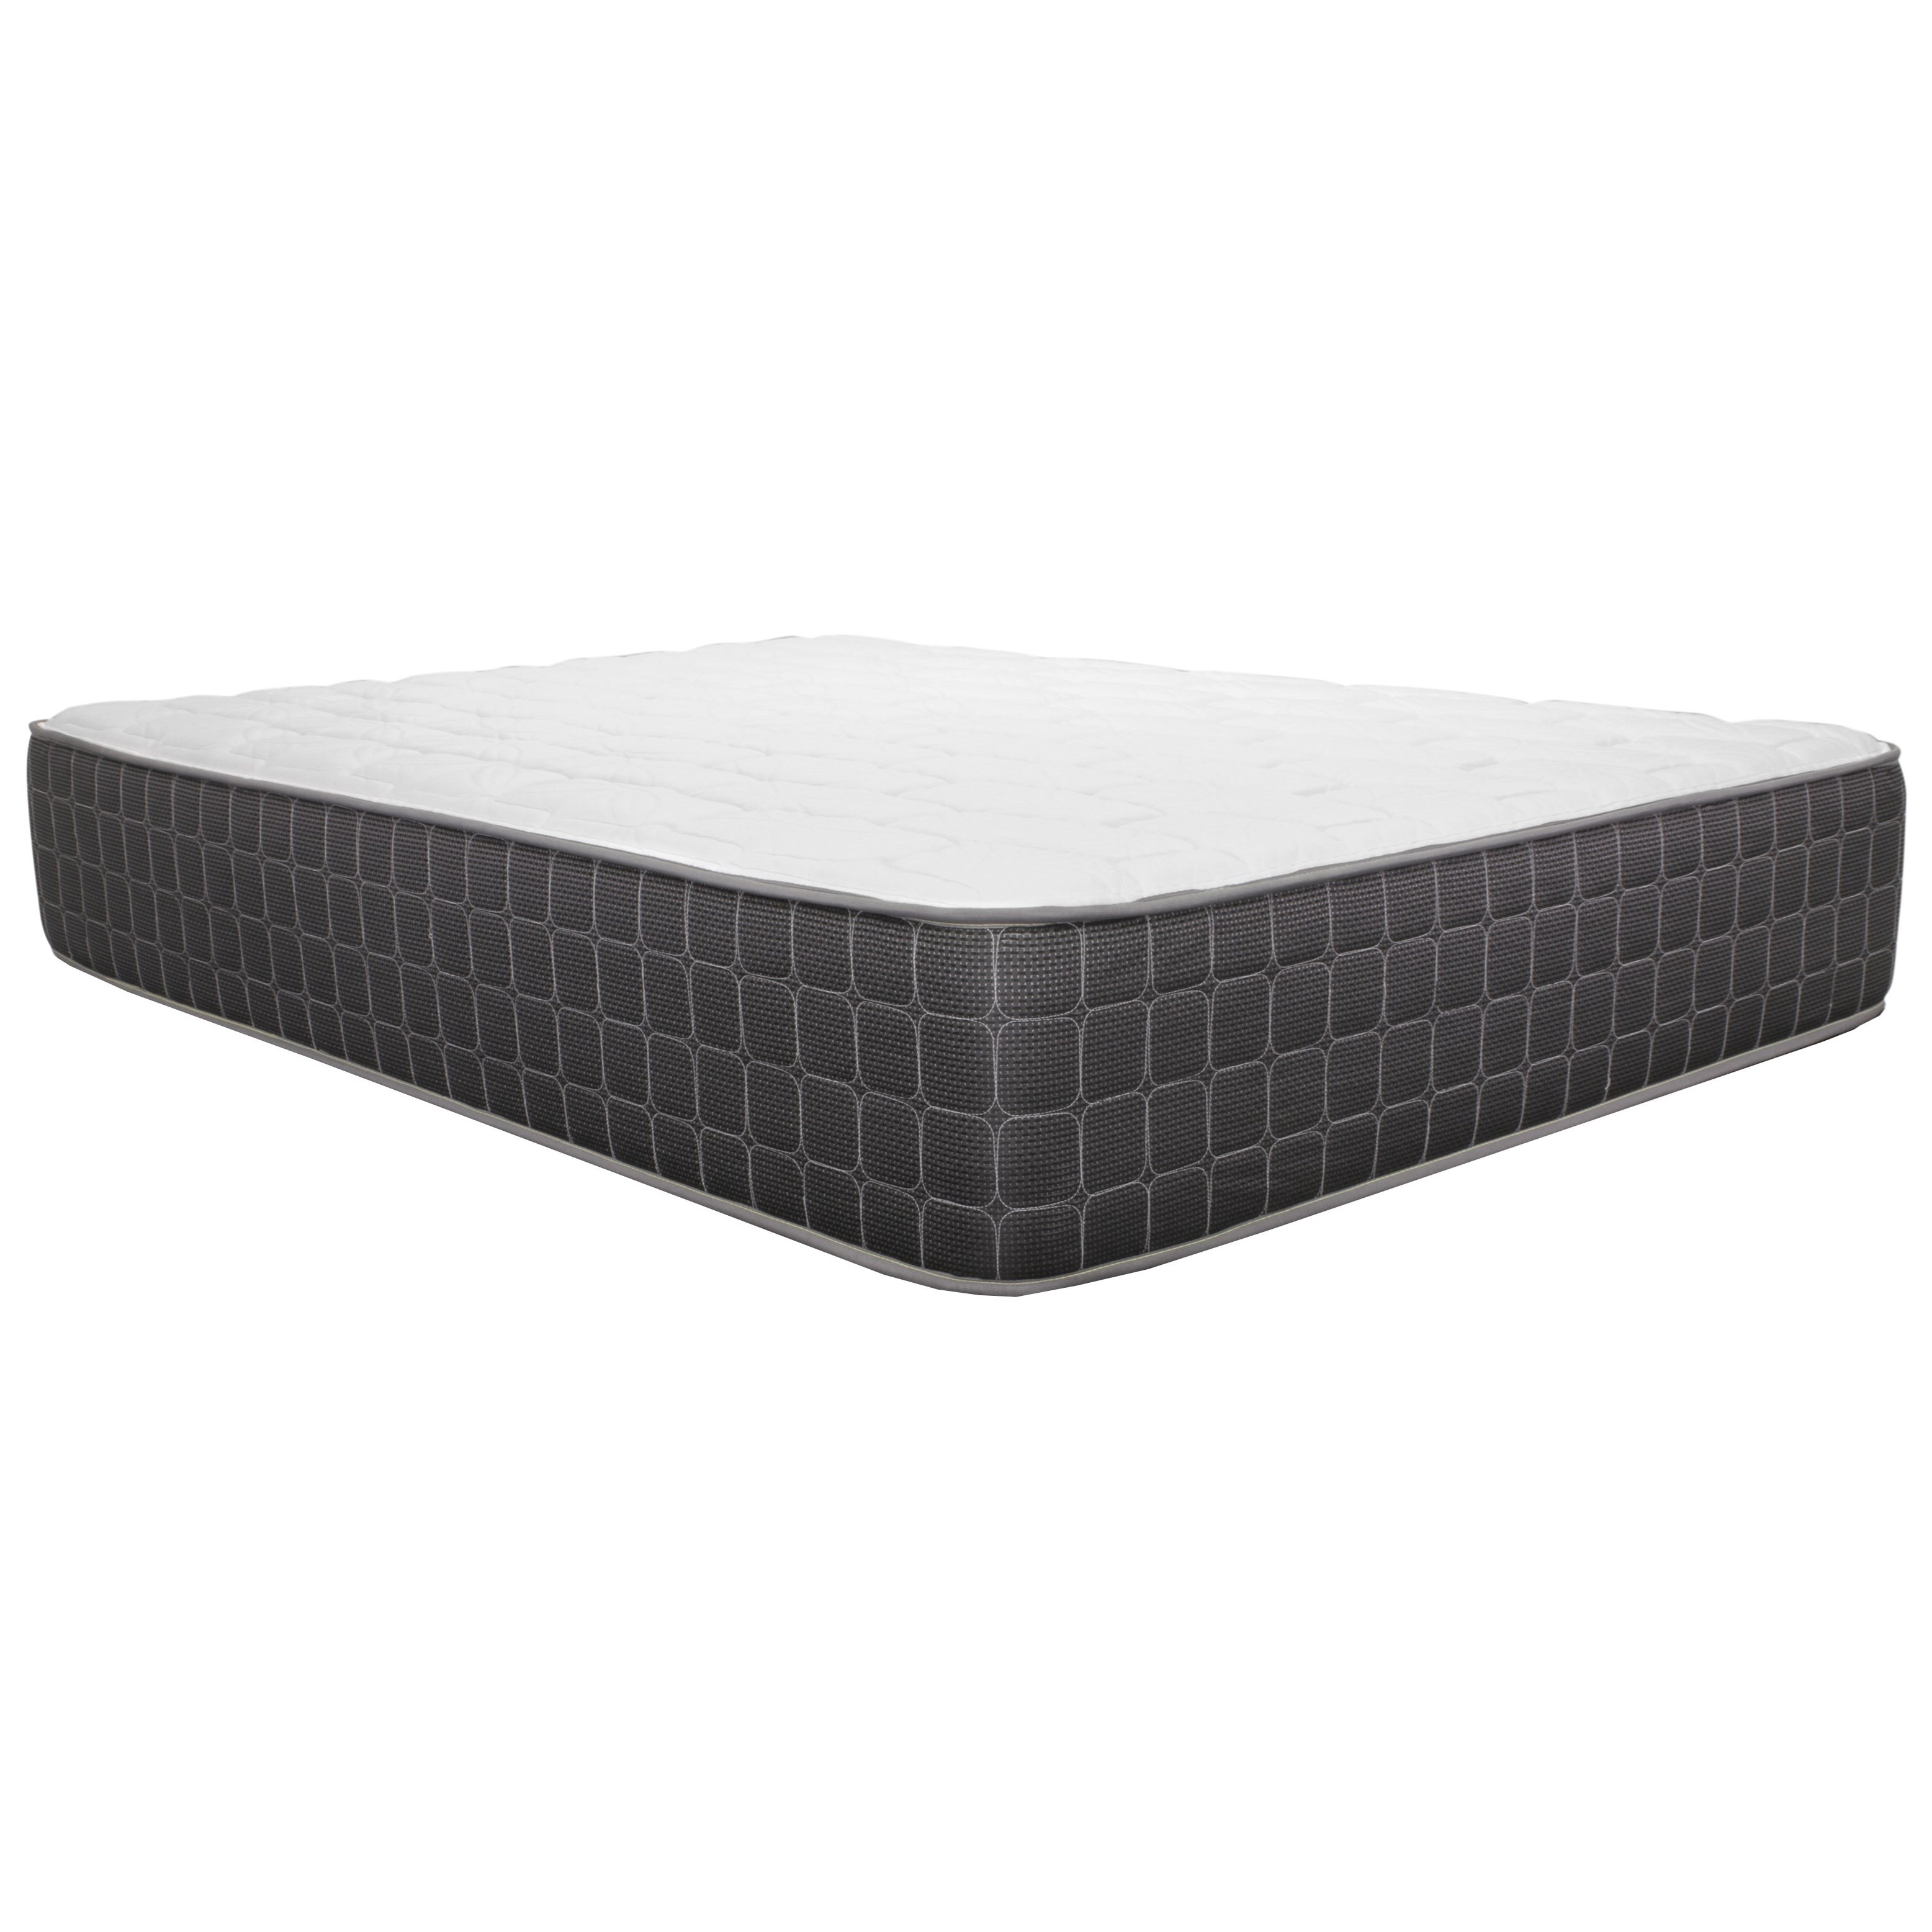 "Full Extra Firm 13.5"" Mattress"